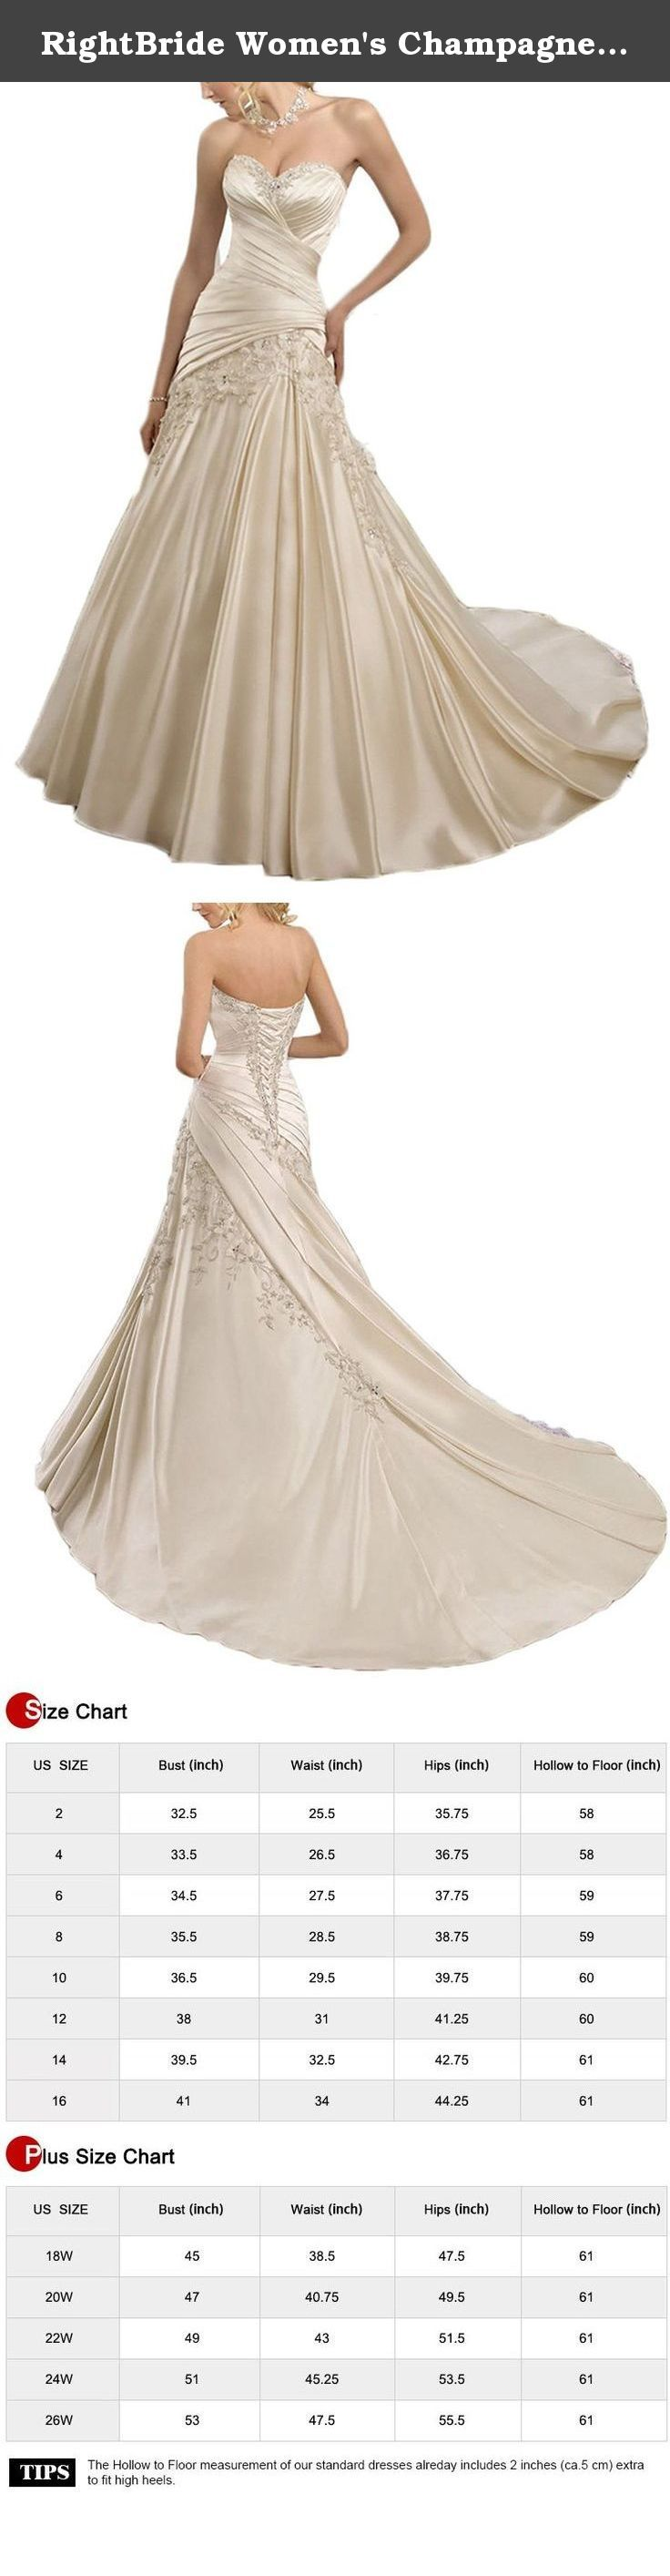 RightBride Women's Champagne Women Mermaid Wedding Dresses 2017 for Bride Satin Bridesmaid Gowns Lace Up Back Size 18W. RightBride Women's Champagne Women Mermaid Wedding Dress 2017 for Bride Satin Bridesmaid Gowns Lace Up Back Size 18W RightBride, Just as the store name indicates, is always dedicated to be the Right online shop on Amazon for wedding dresses for bride, So quality is our first priority. 1.With high quality fabrics, beads, pearls, crystals and threads, RightBride are always...